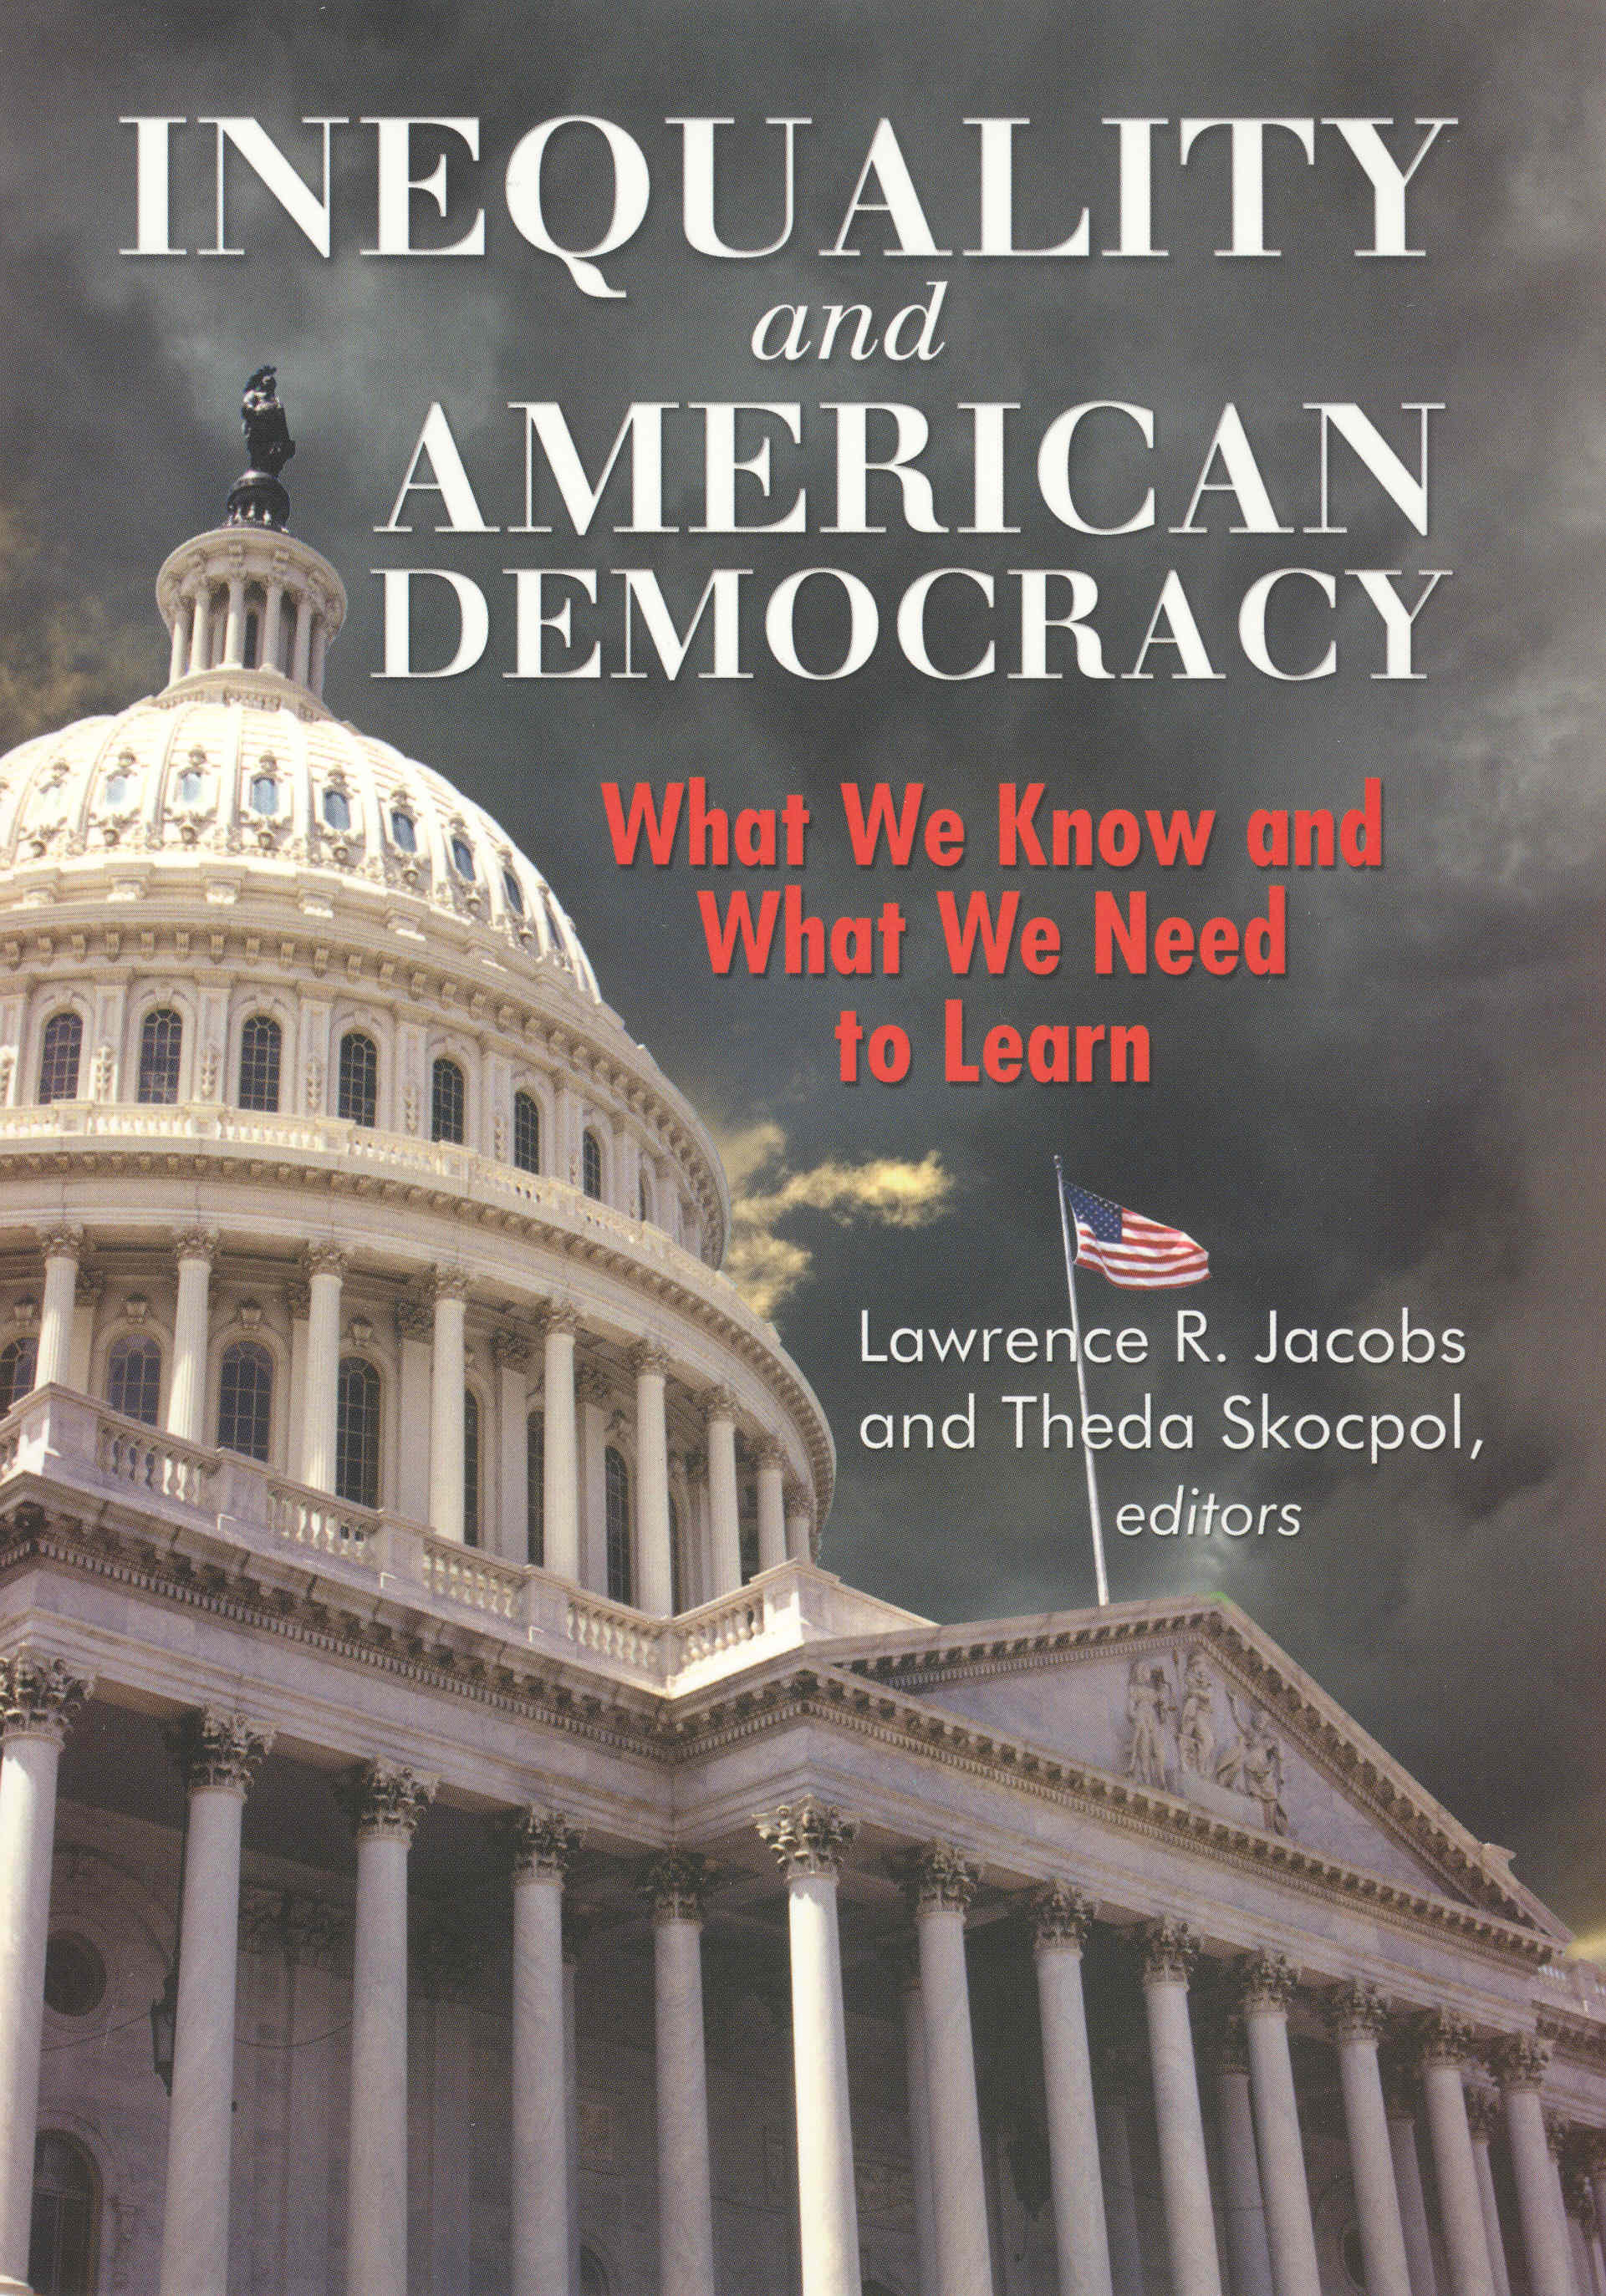 Inequality and American Democracy